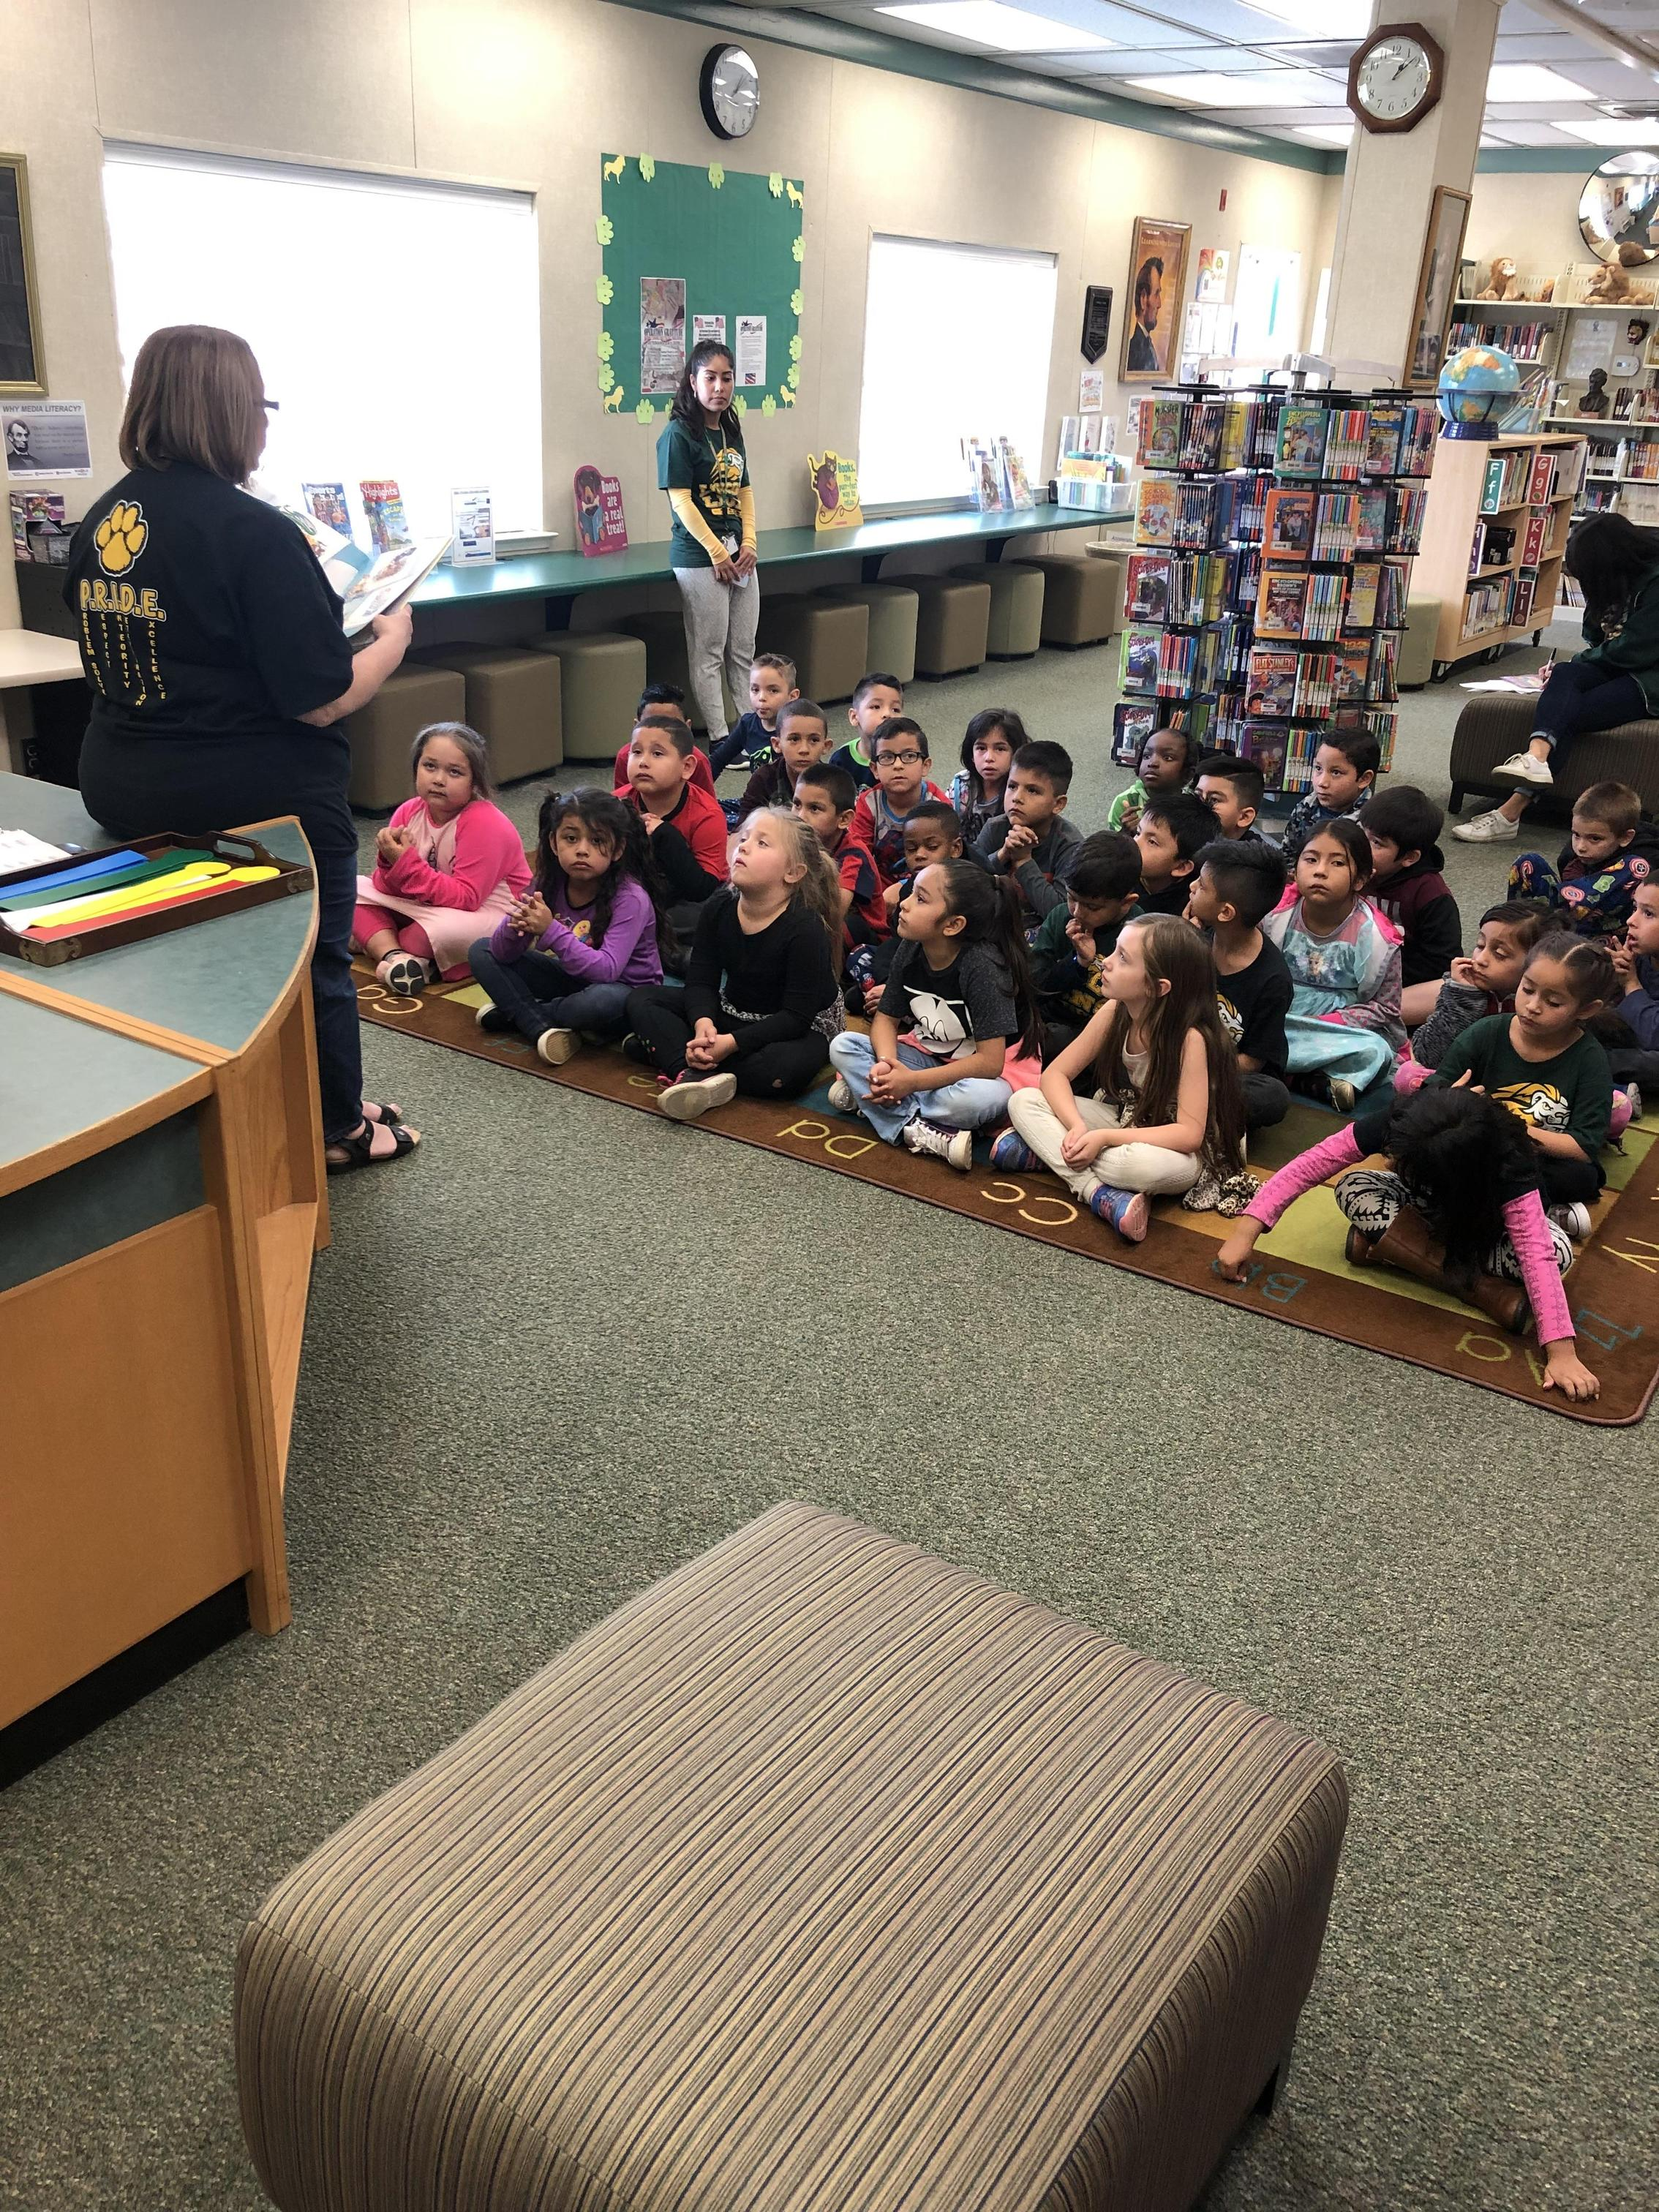 Librarian reading story 2